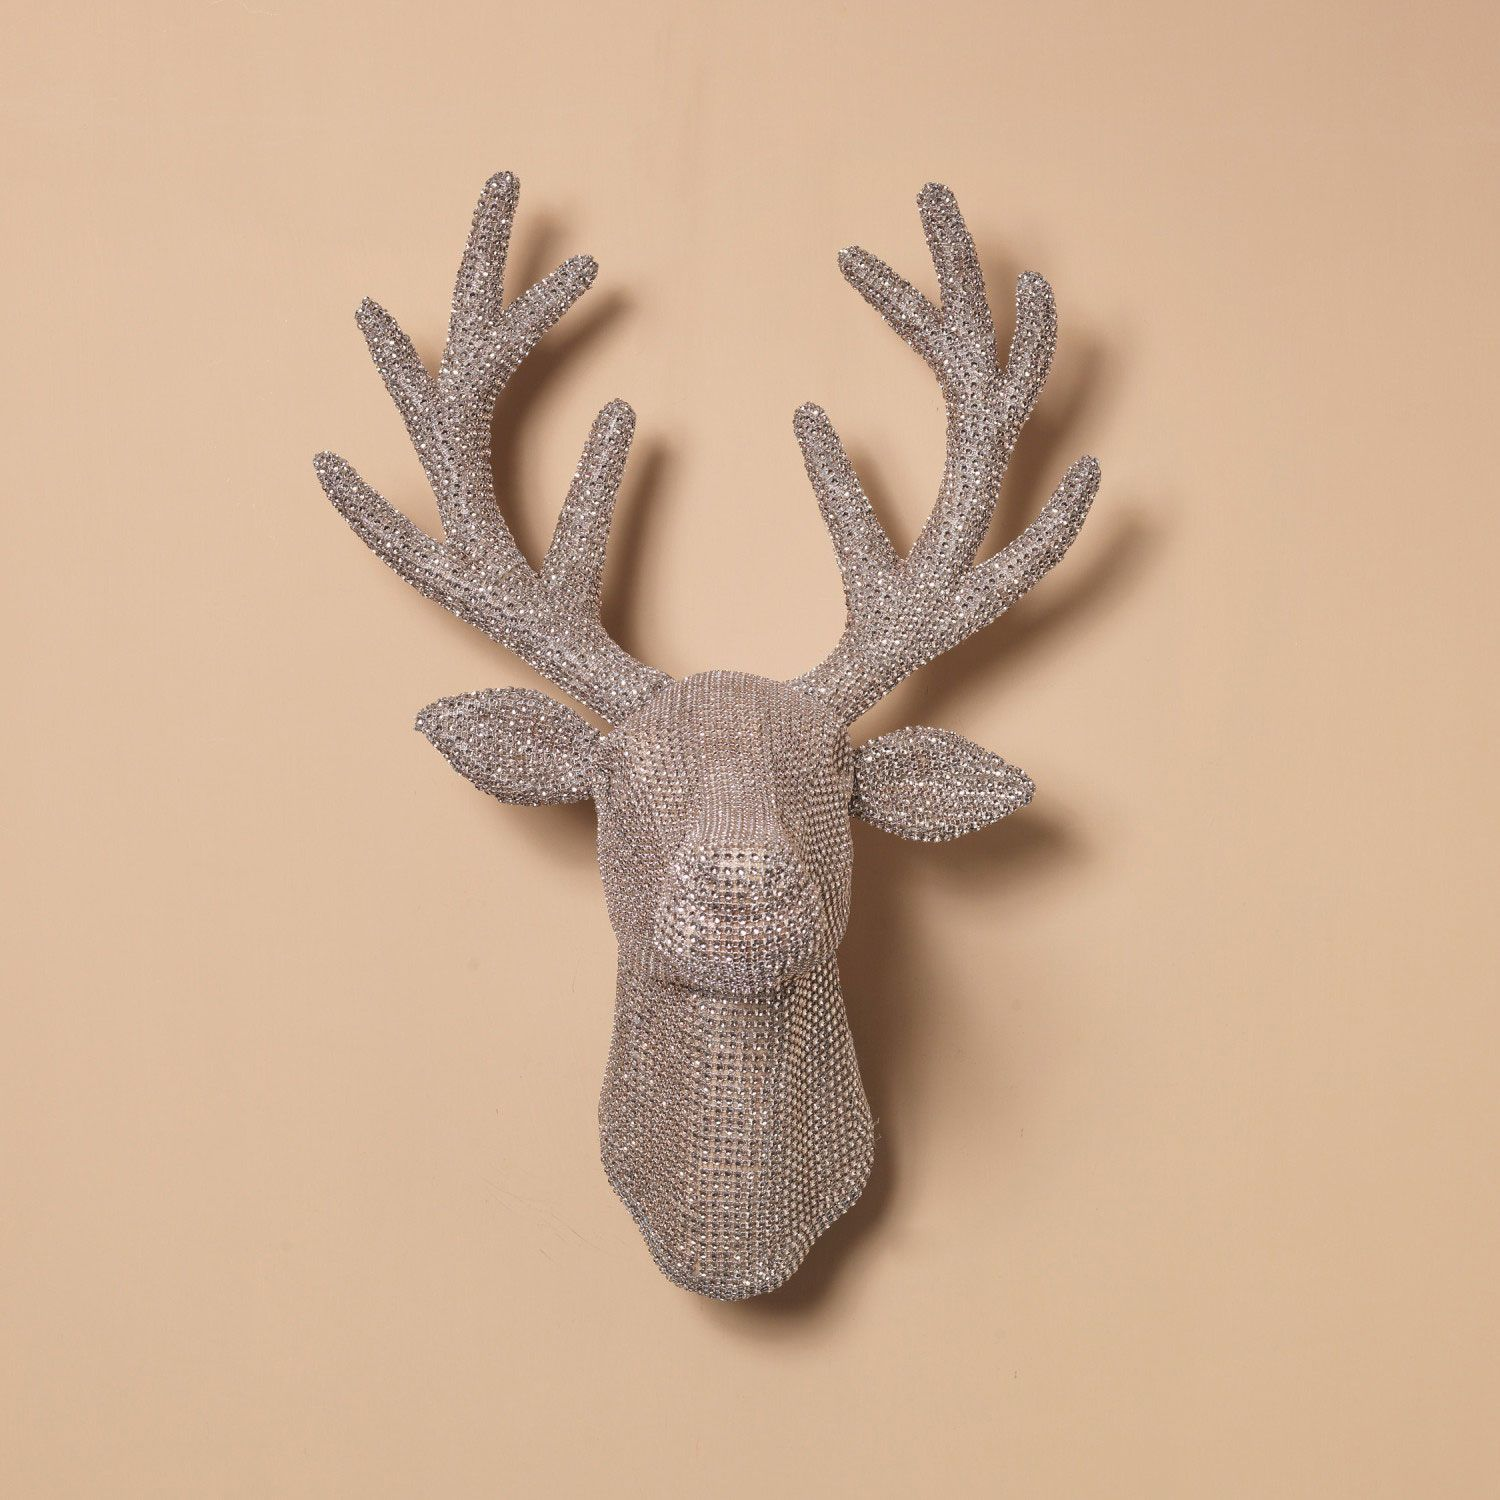 Sam's Club Jeweled Reindeer Antler Head Is Our Christmas Decor Obsession